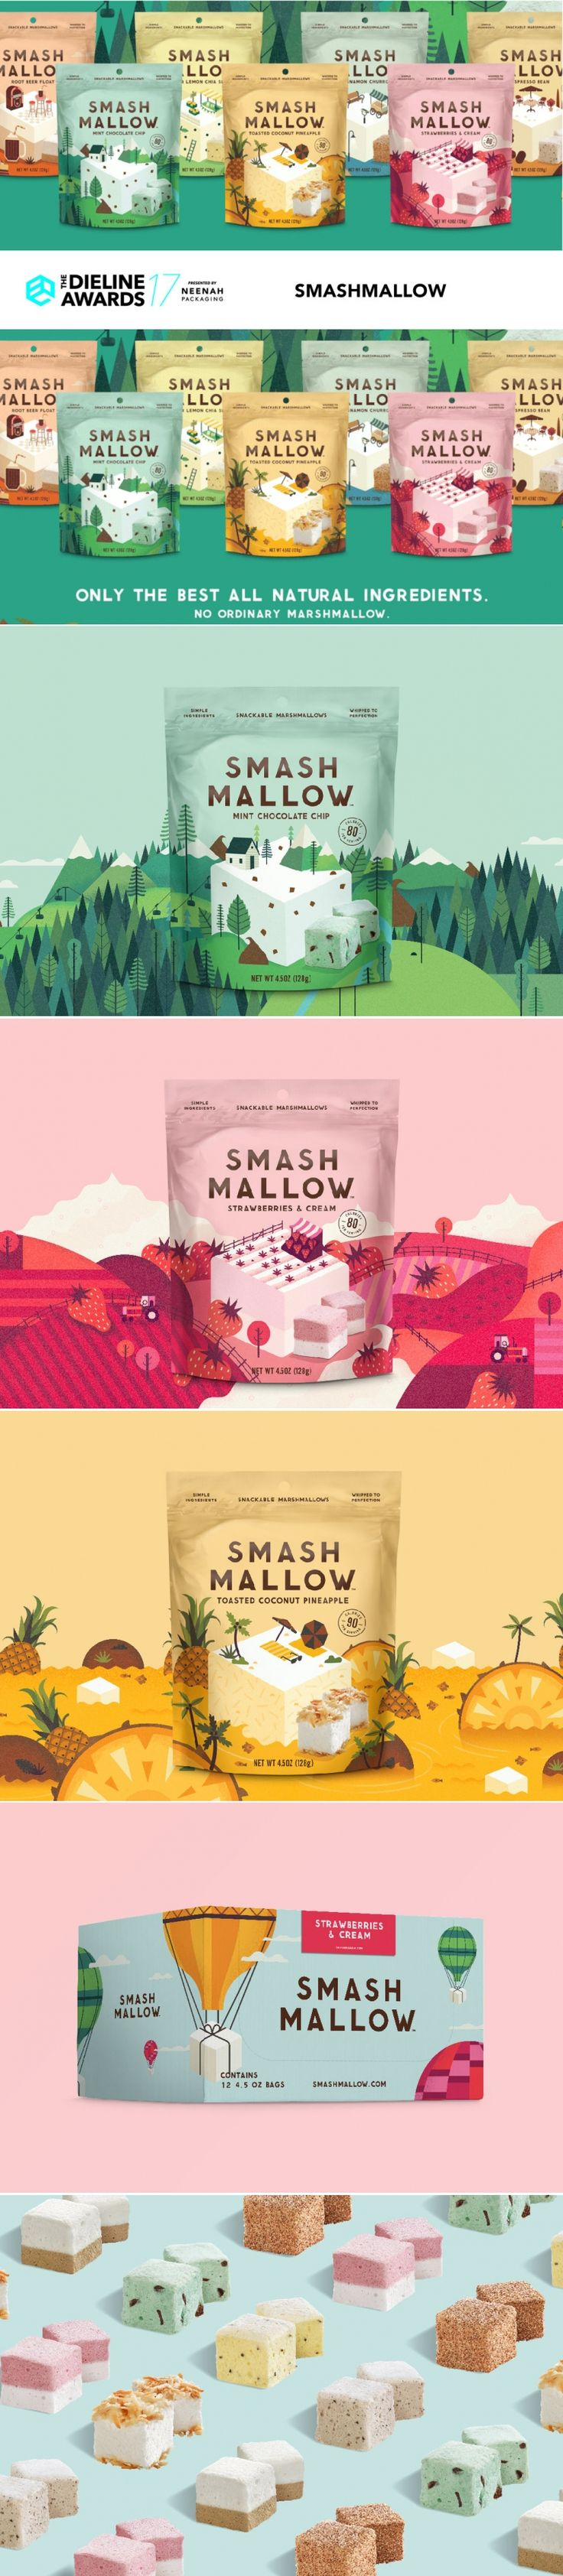 The Dieline Awards 2017 Outstanding Achievements: Smashmellow — The Dieline | Packaging & Branding Design & Innovation News